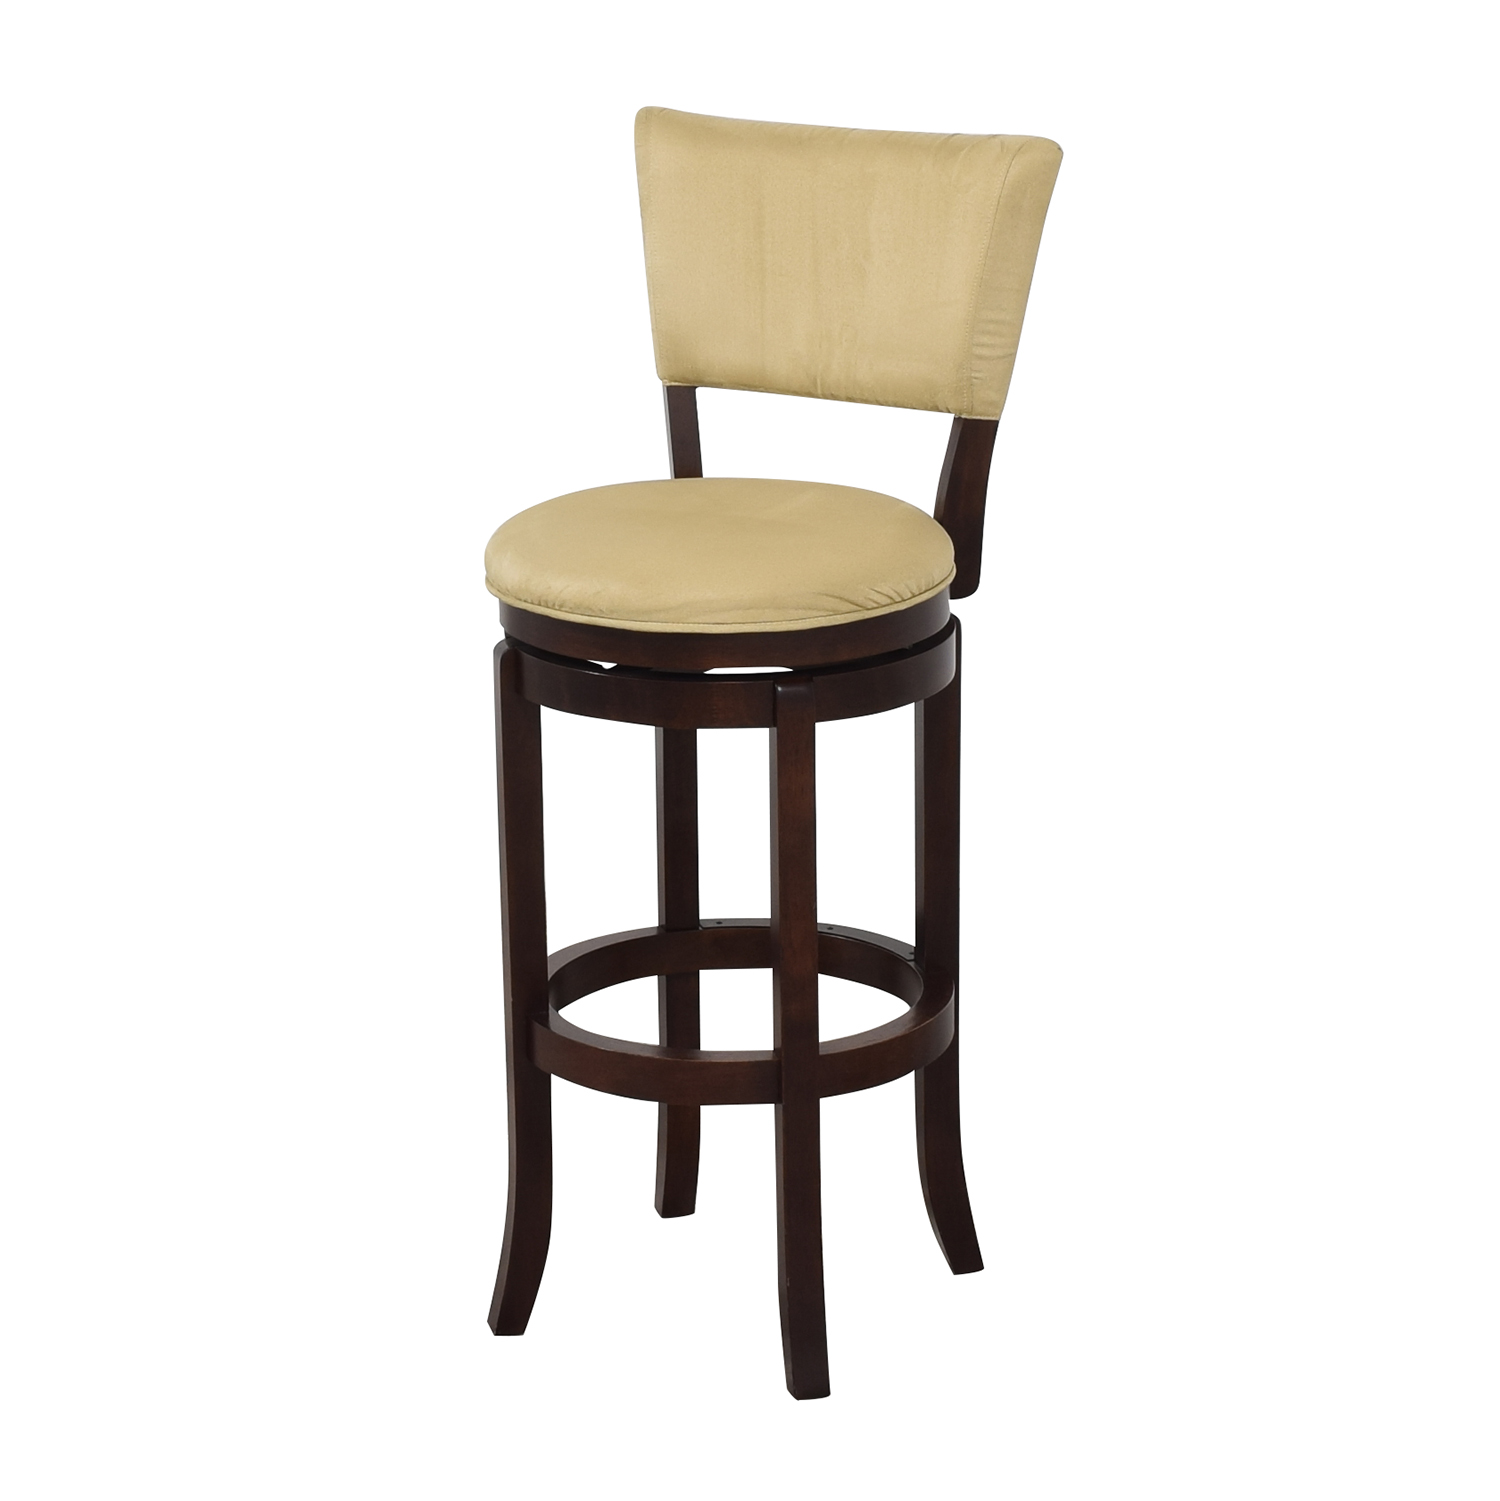 Rooms To Go Keefer Bar Stools / Stools